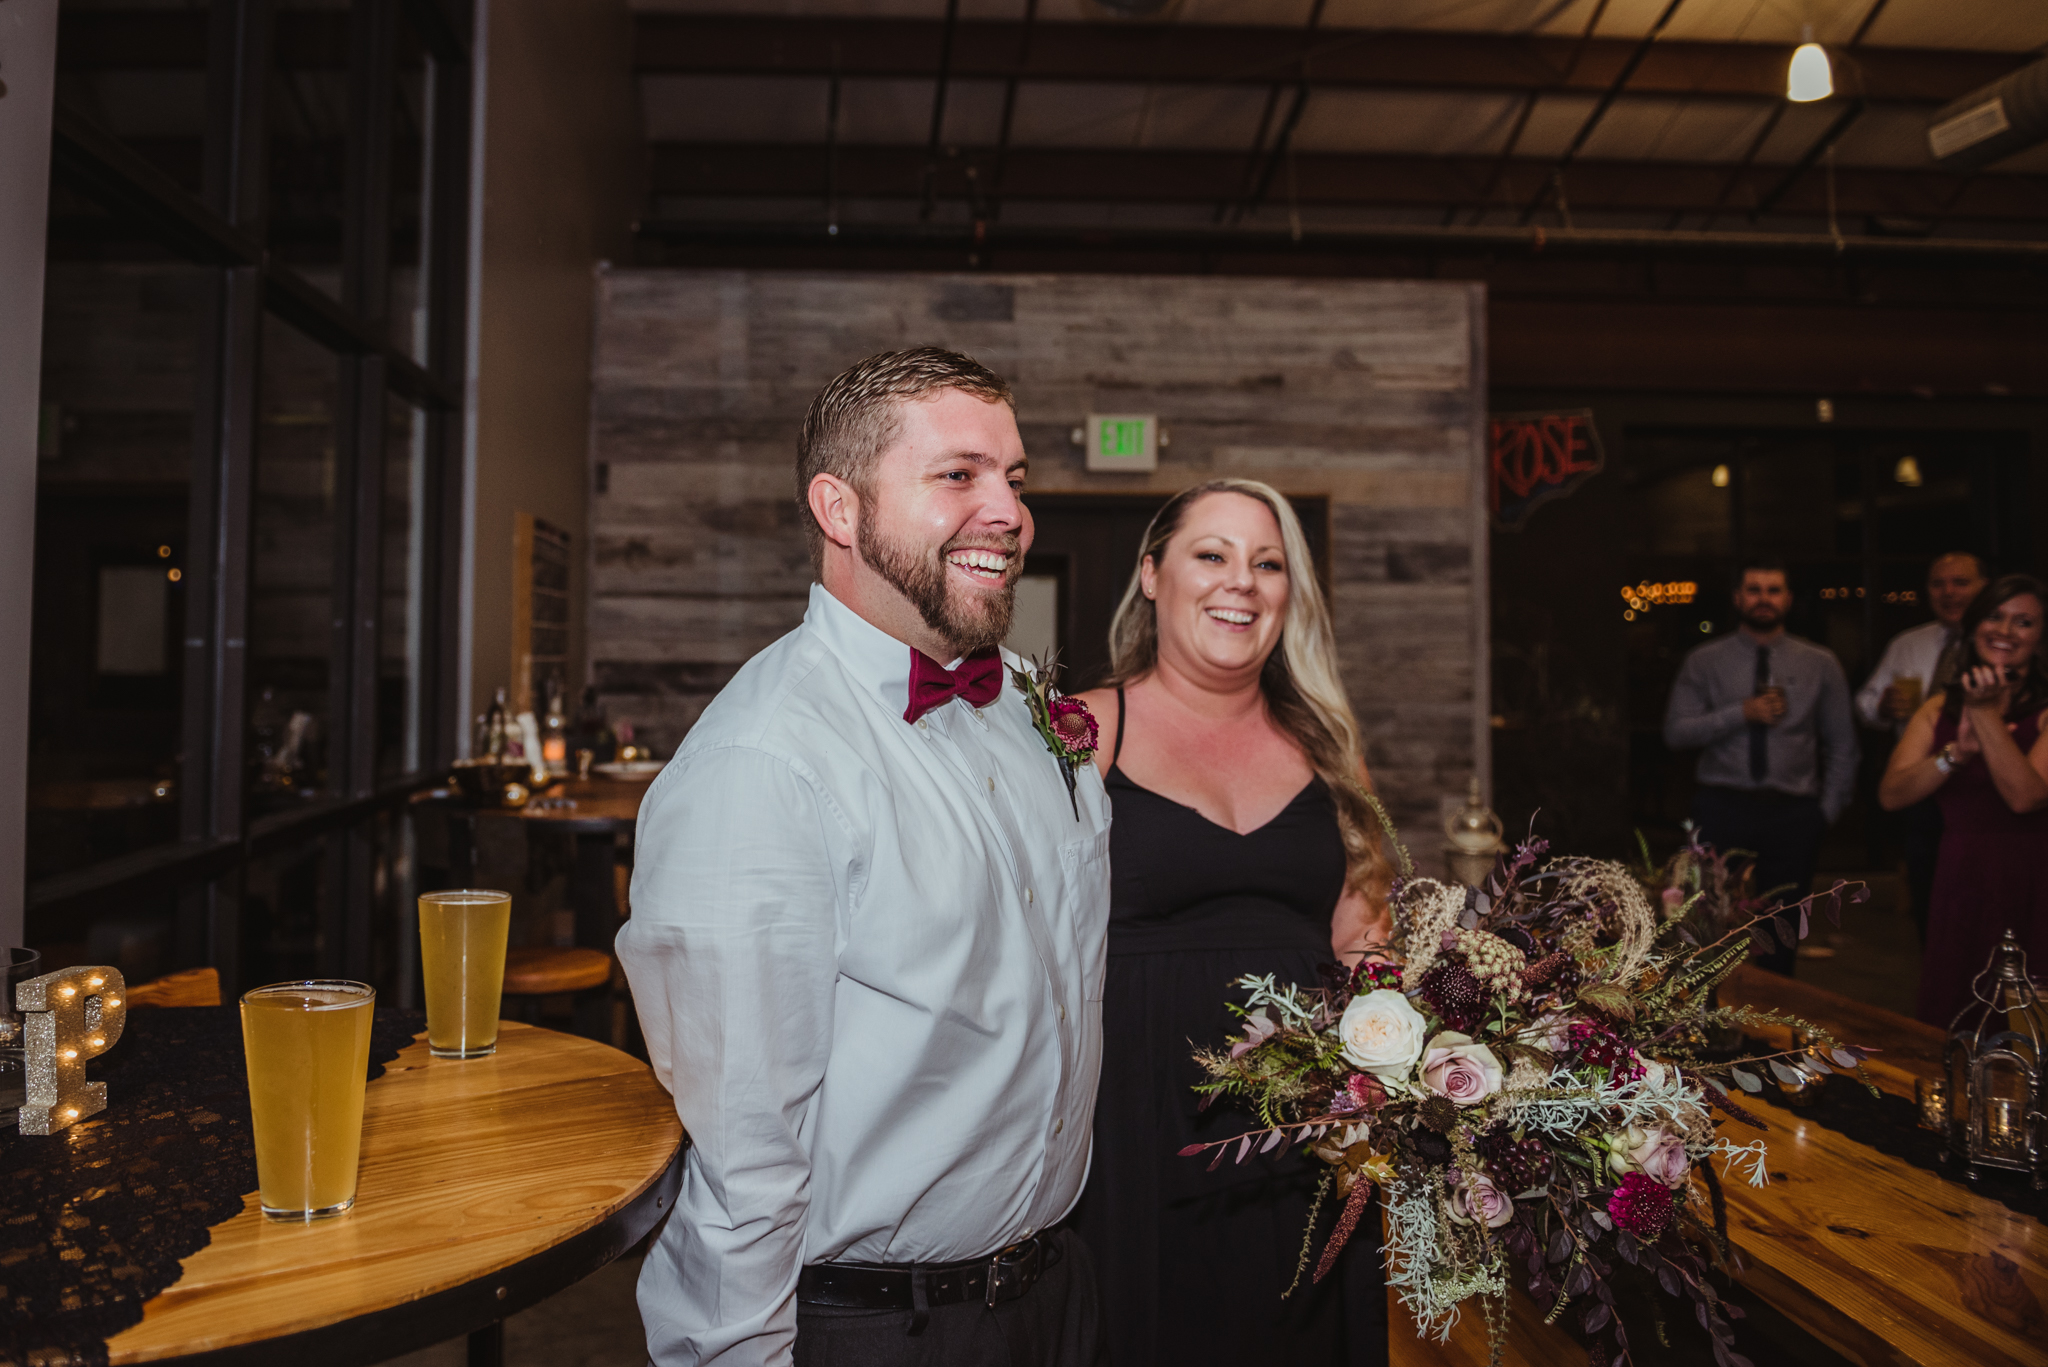 the-bride-and-groom-enter-the-brewrery-for-the-wedding-reception.jpg